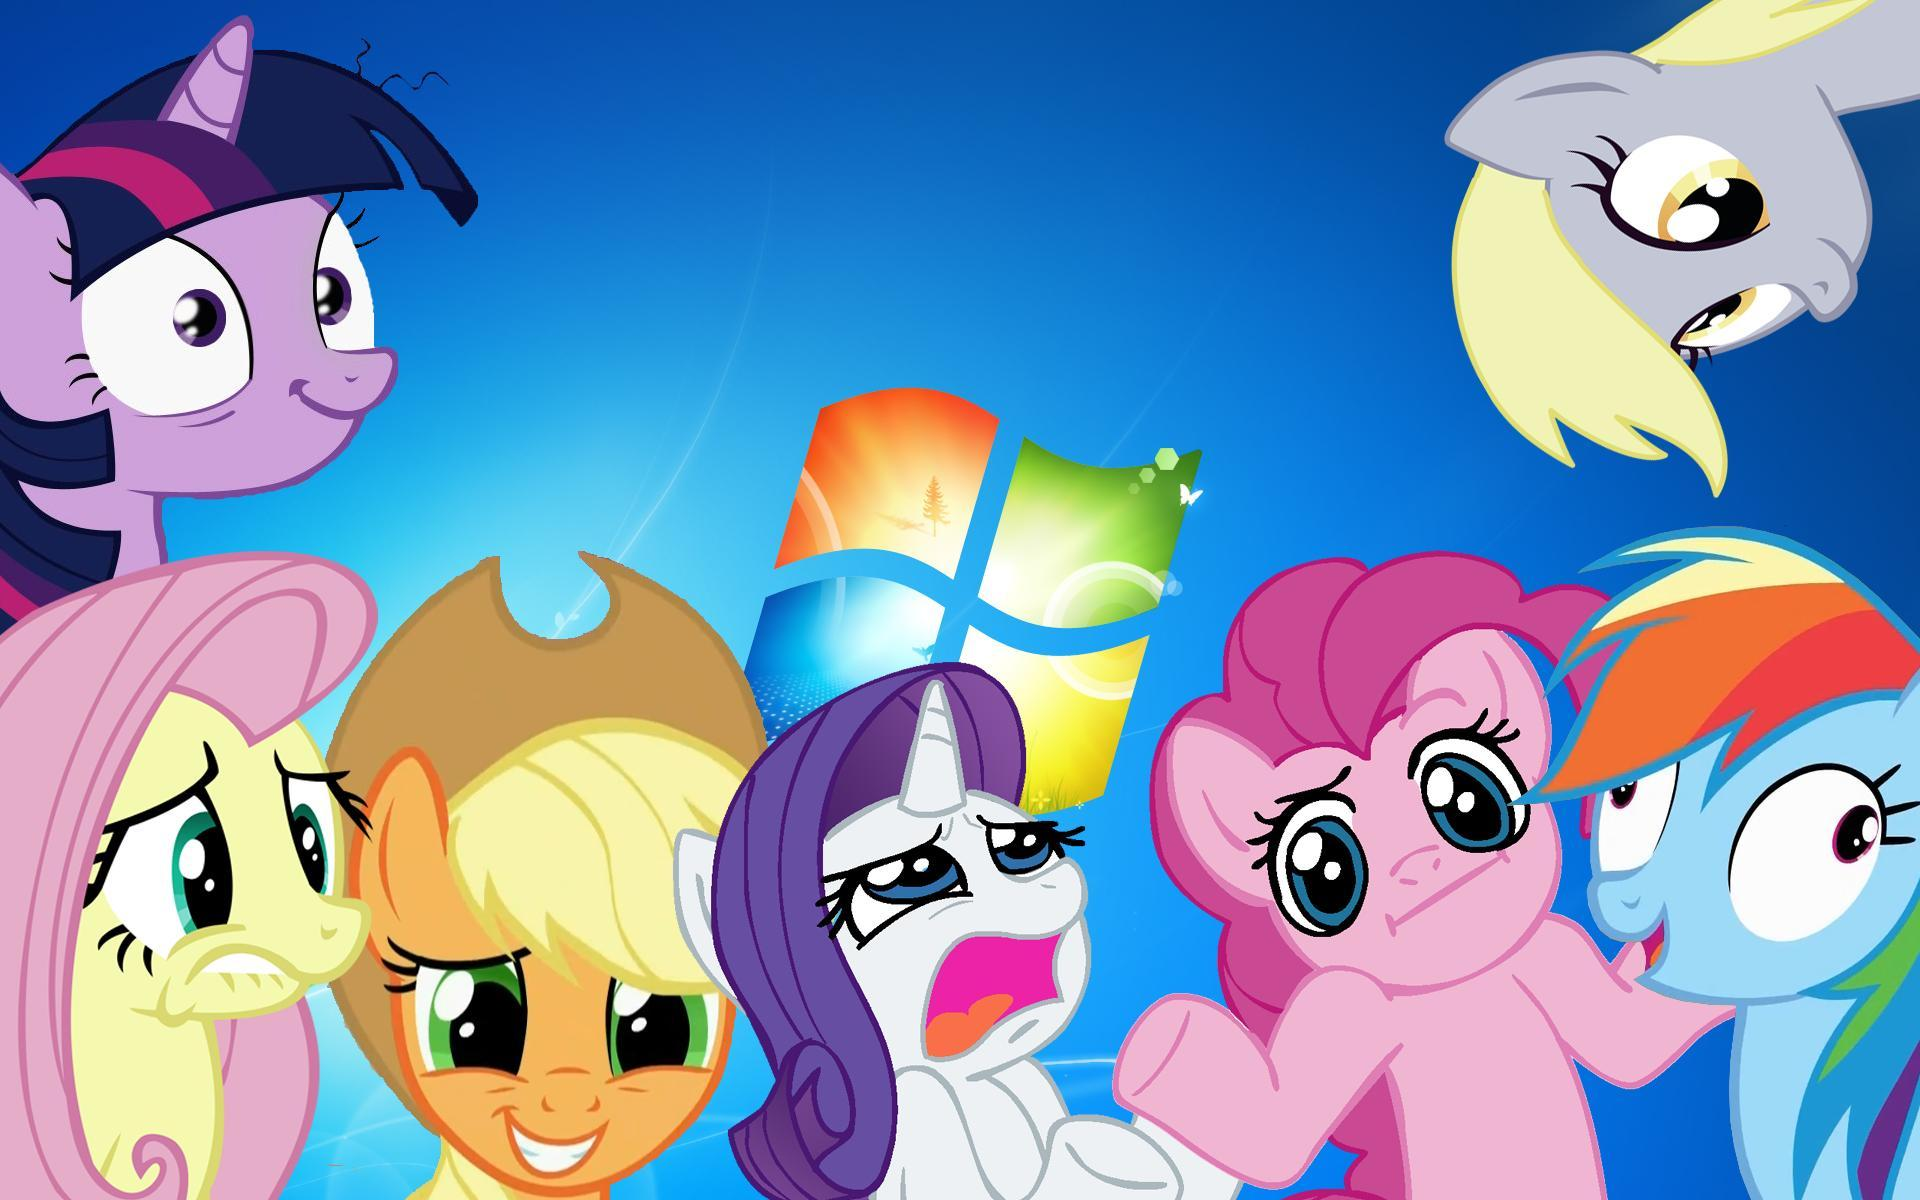 mlp background pony wallpapers - photo #6